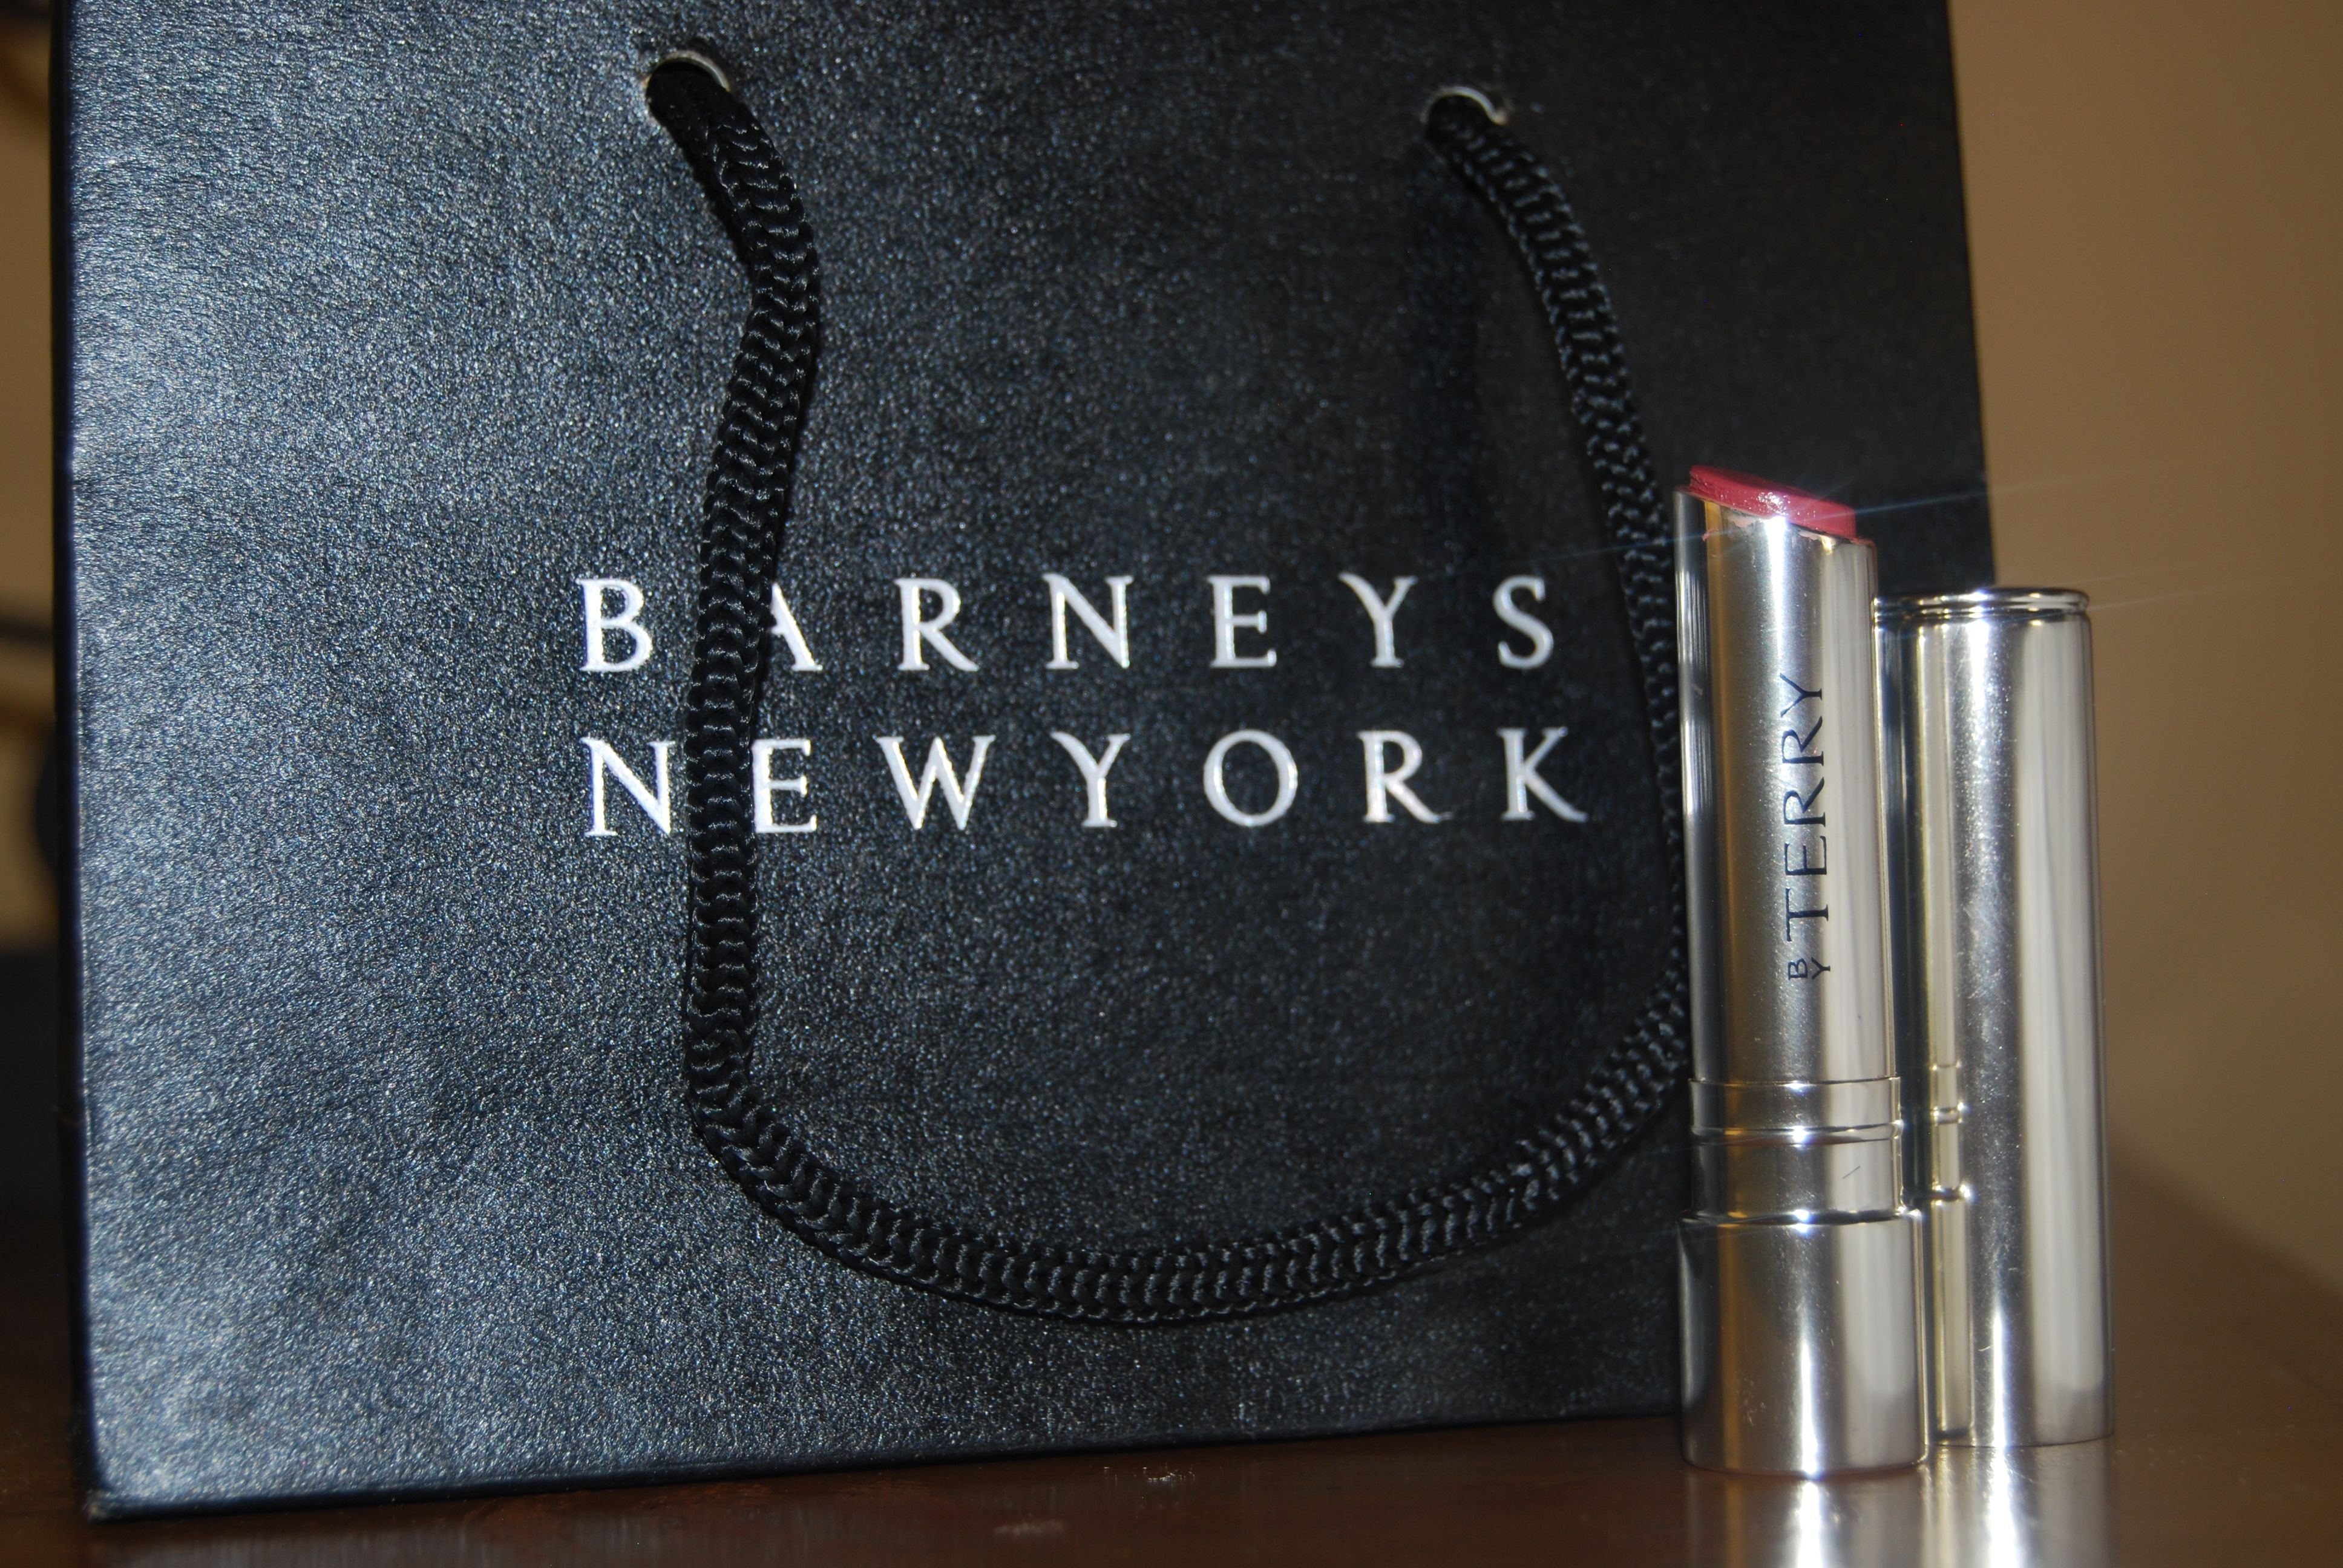 My new lipstick! By Terry Dana Barney's, Hyaluronic Sheer